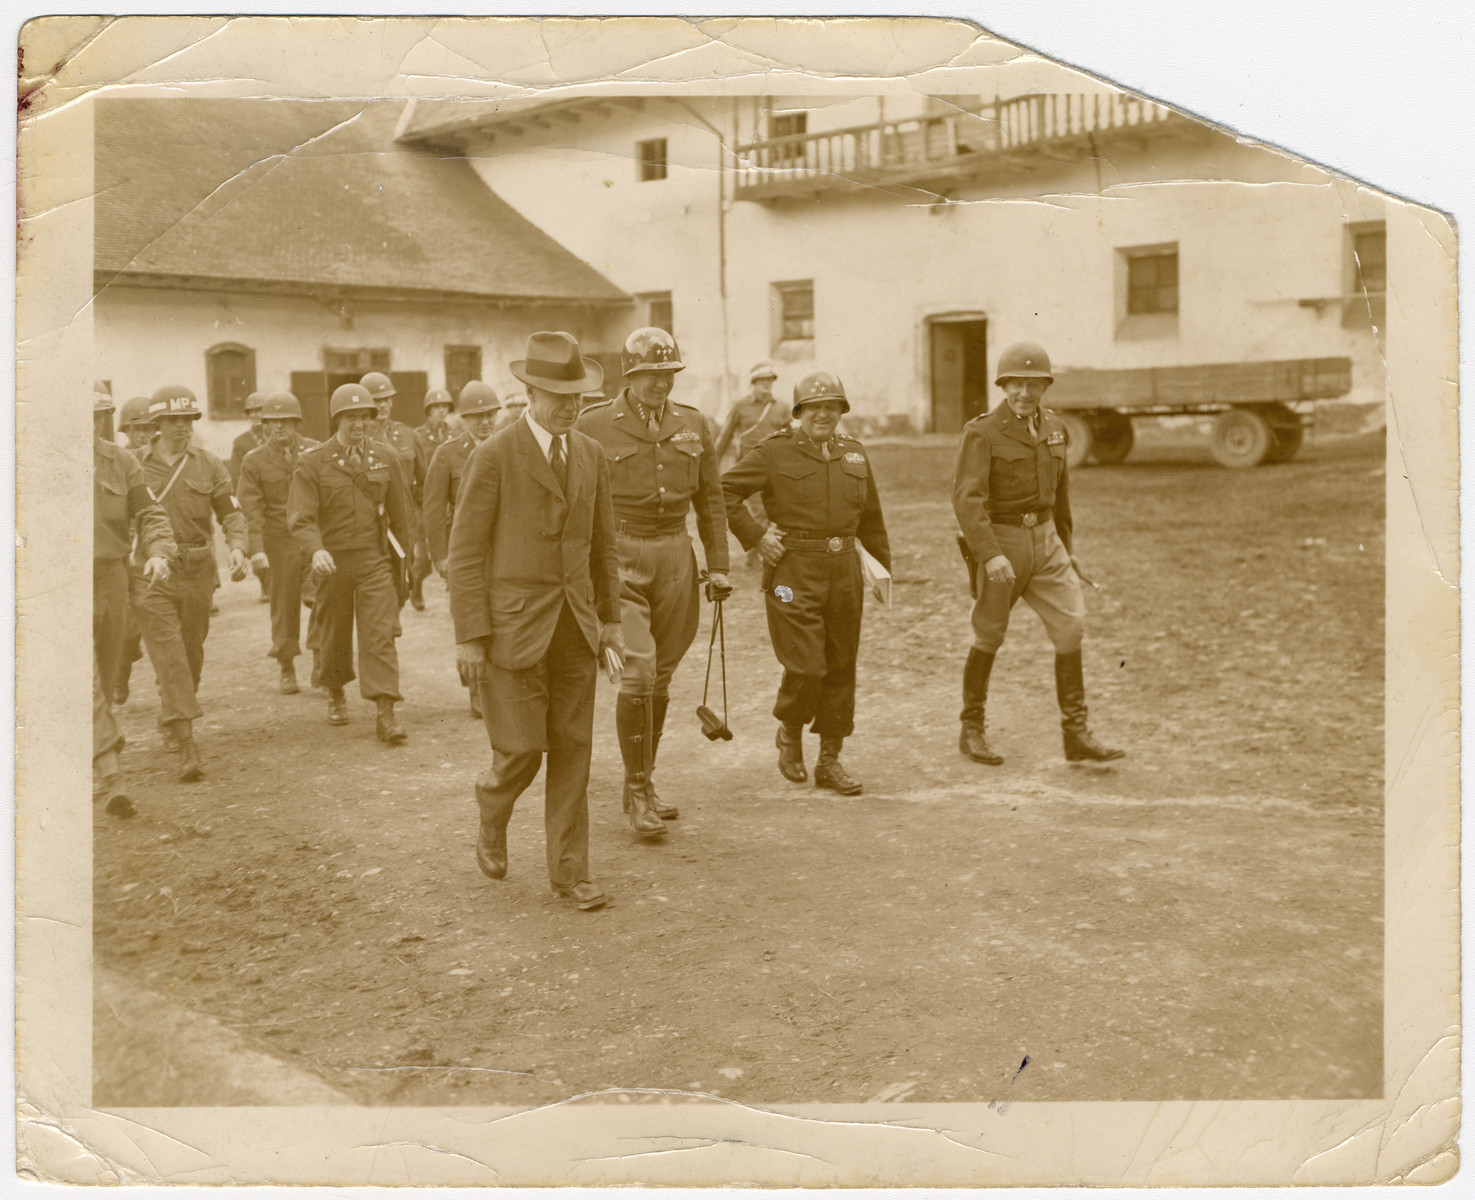 General Patton escorts Under Secretary for War, Robert Patterson, through a town in Austria.  Also pictured are Brig. General Collier and Lt. General Walker.